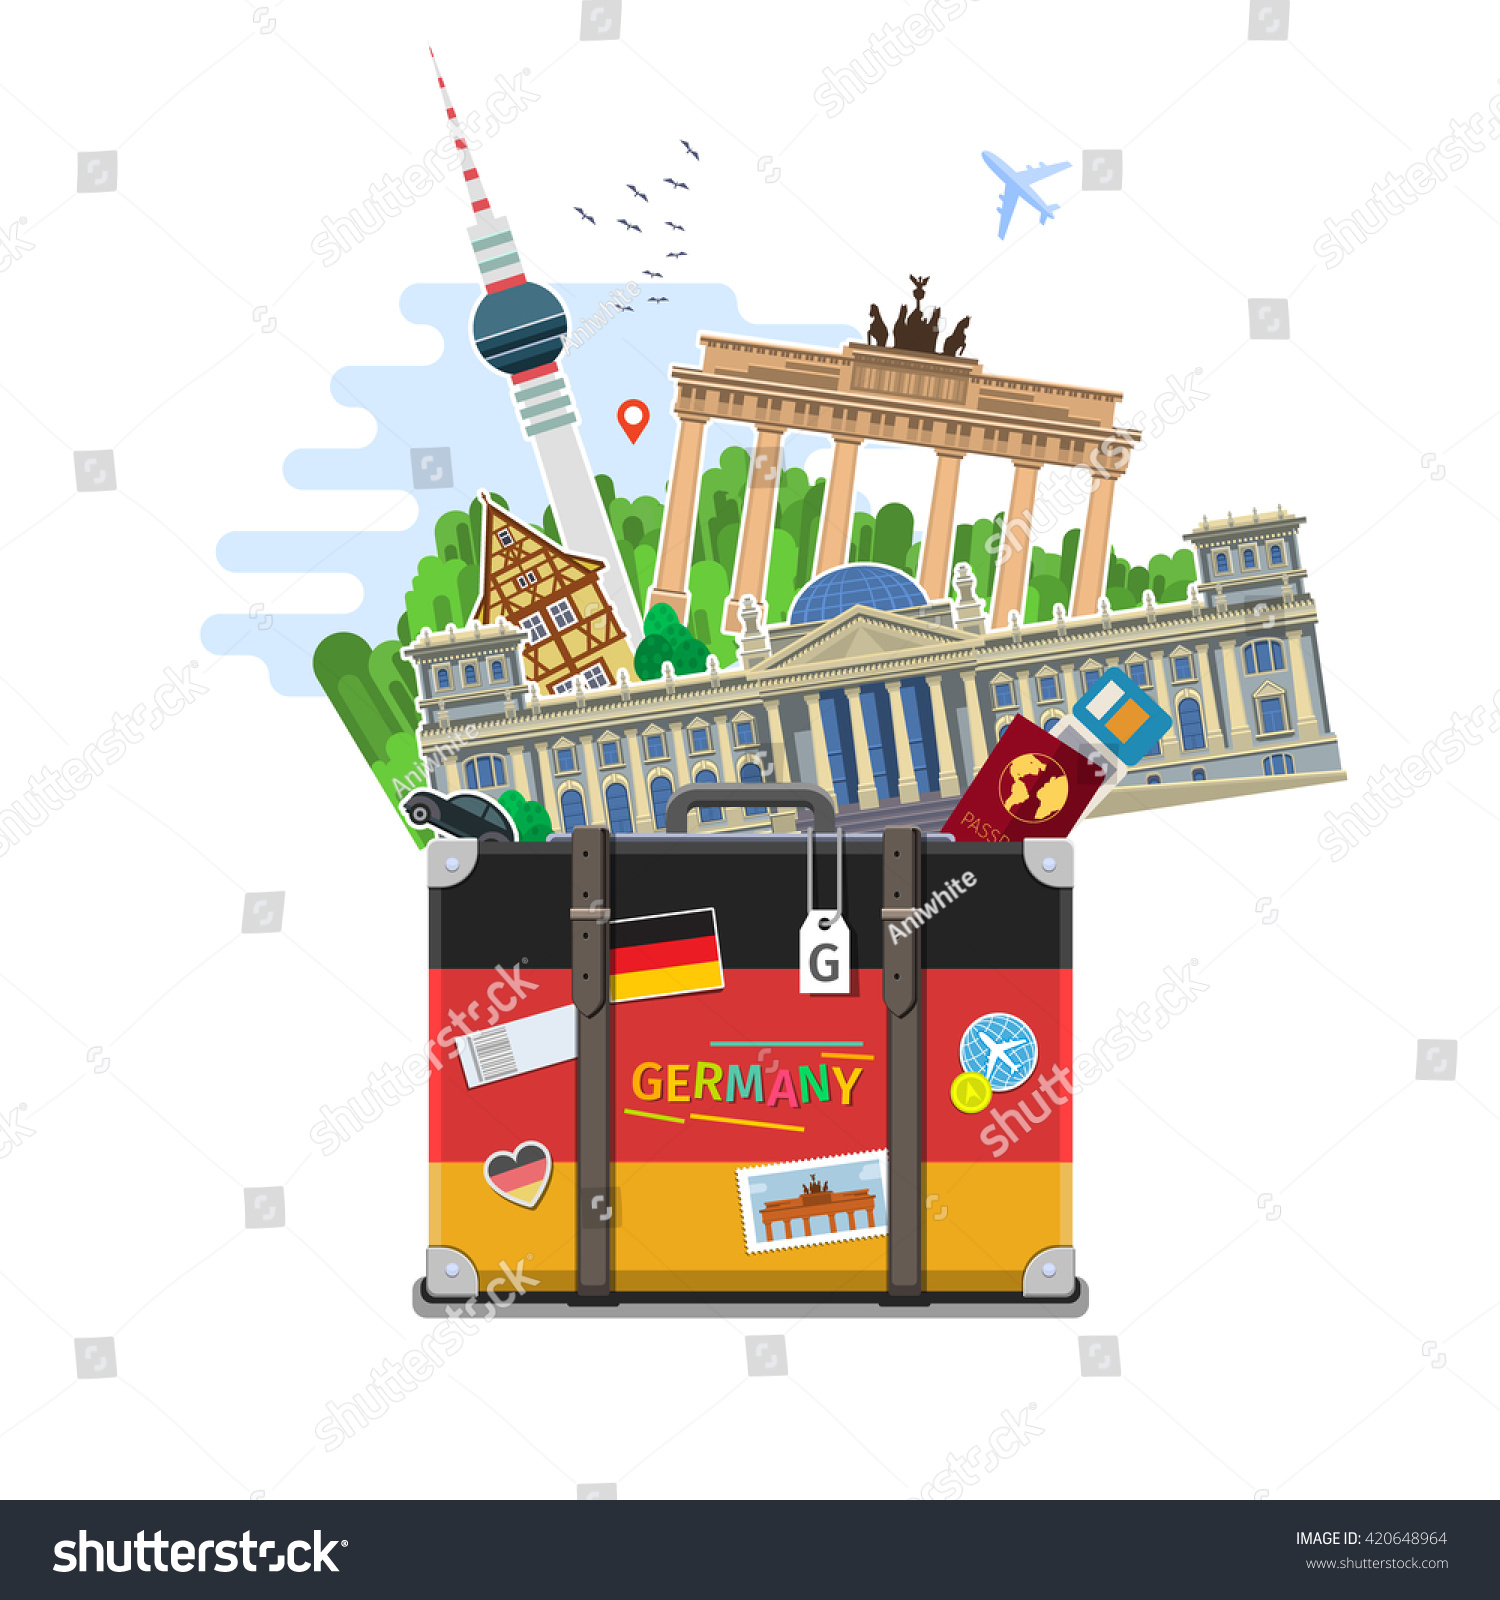 Concept Travel Germany Studying German German Stock Vector ...